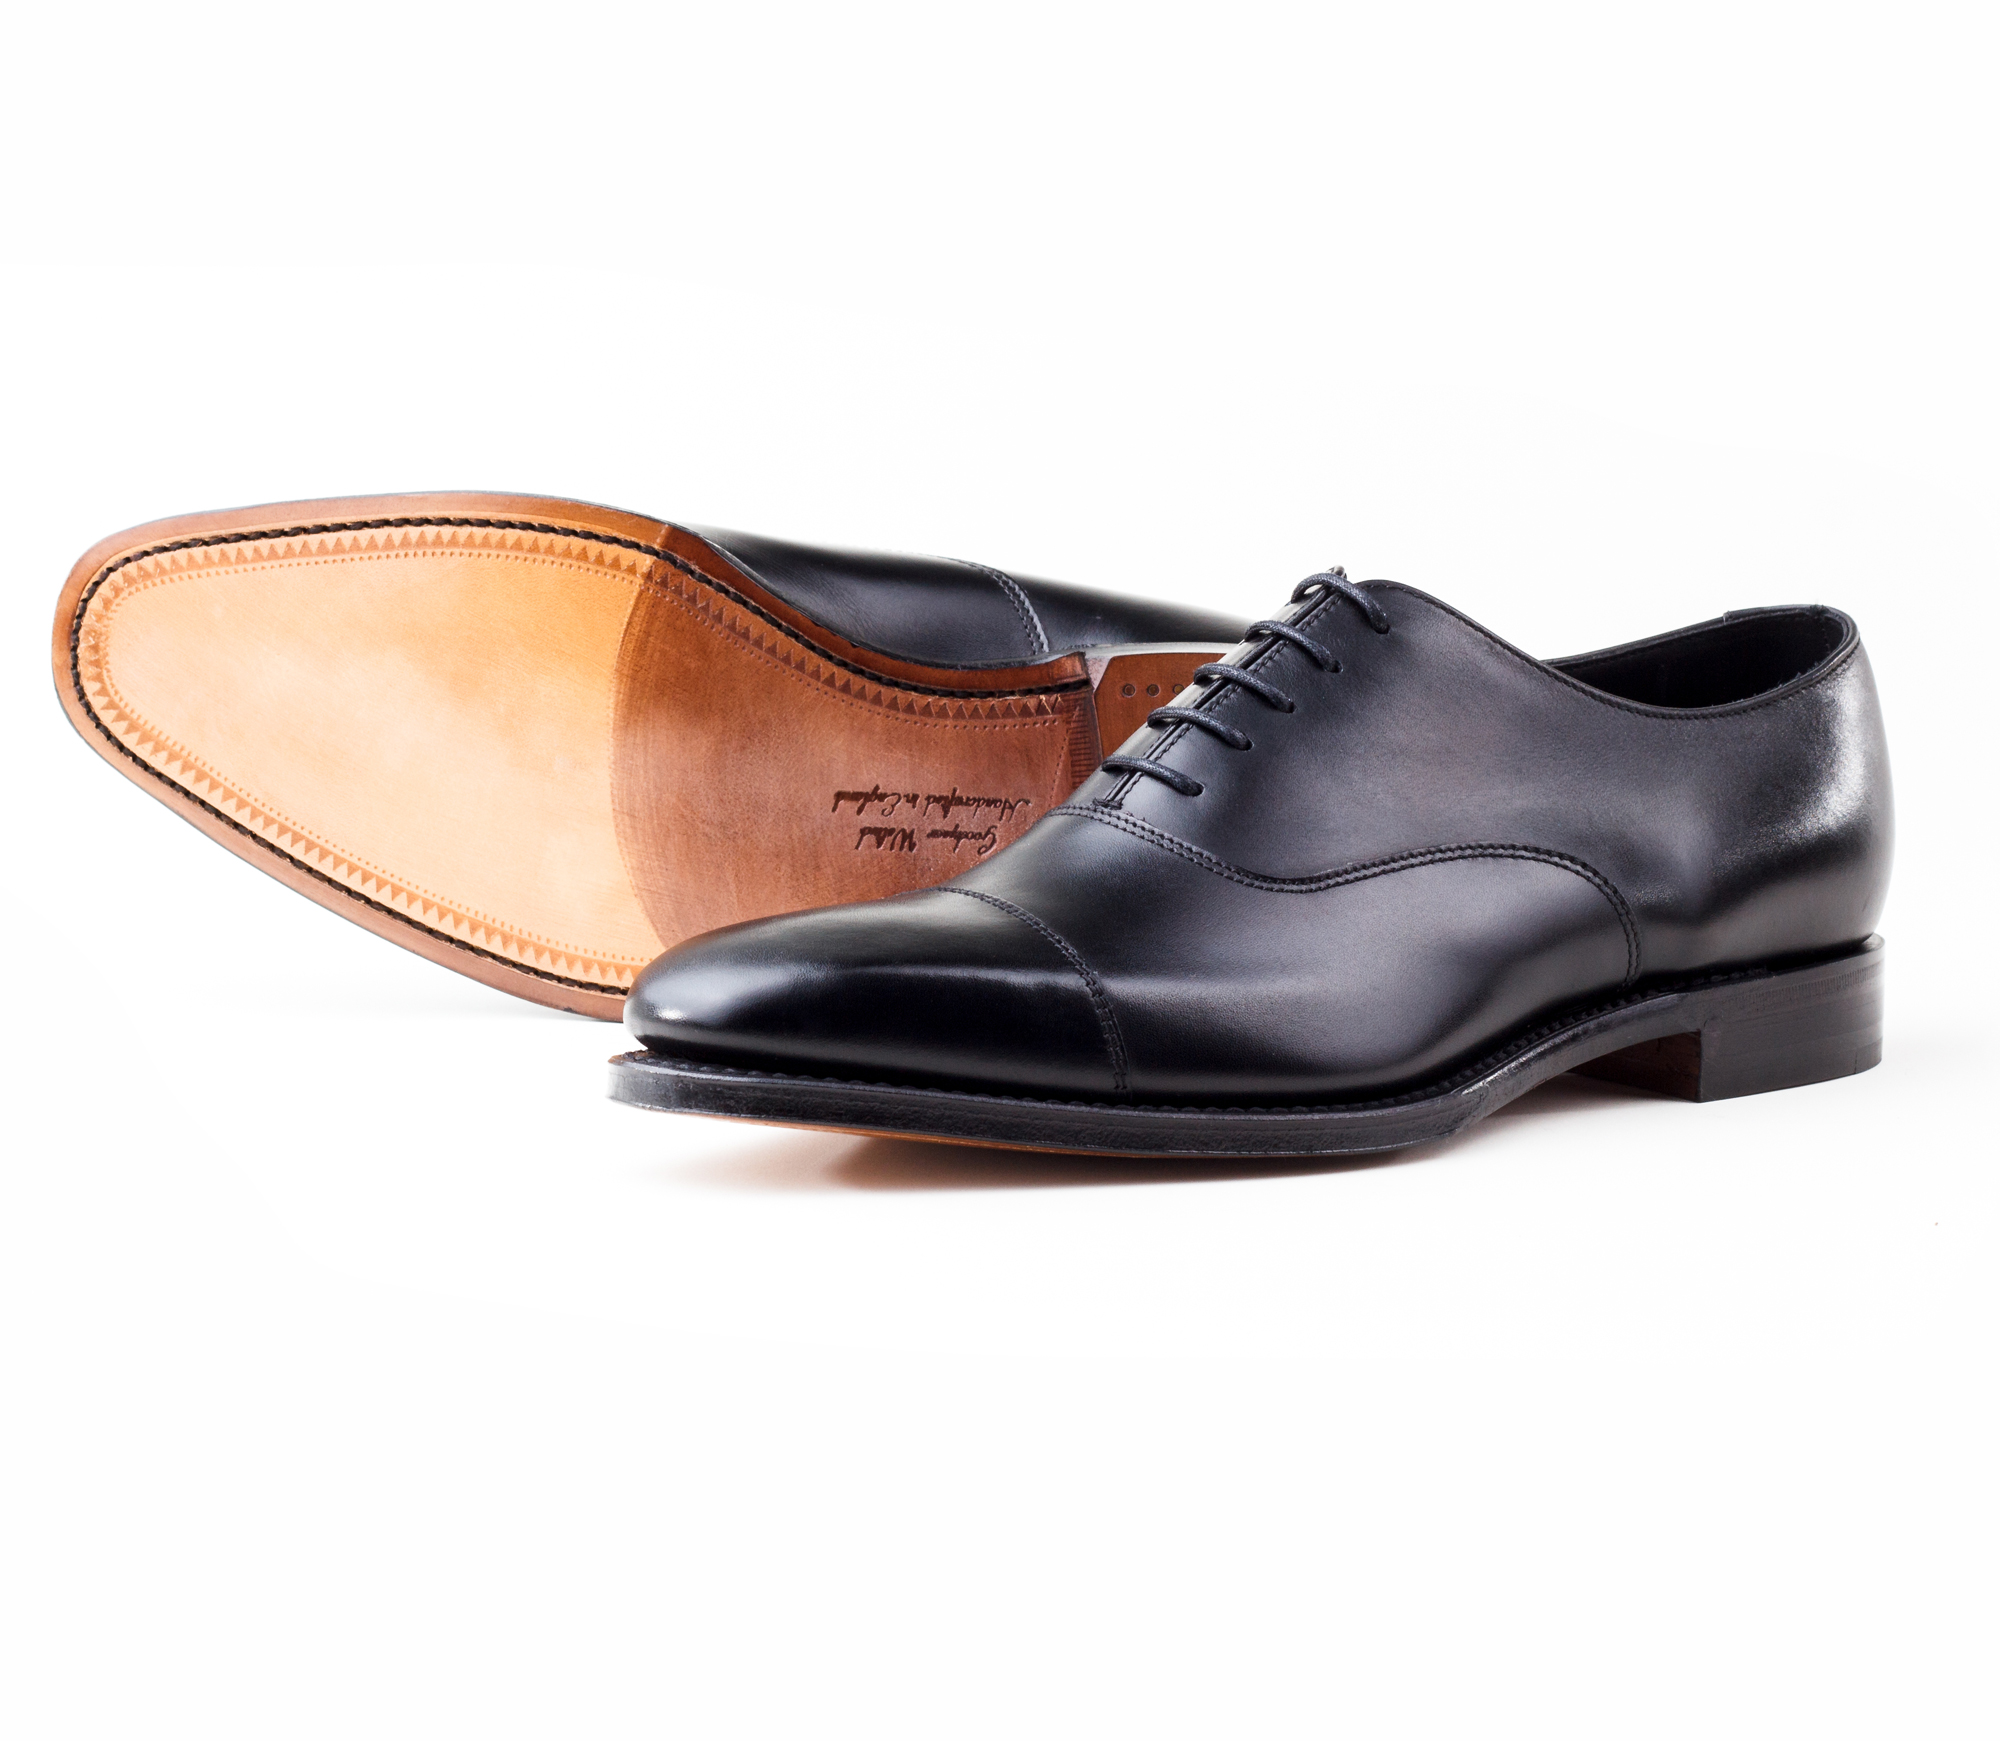 фото Оксфорды Loake, Rothschild Black от магазина MENSHOES